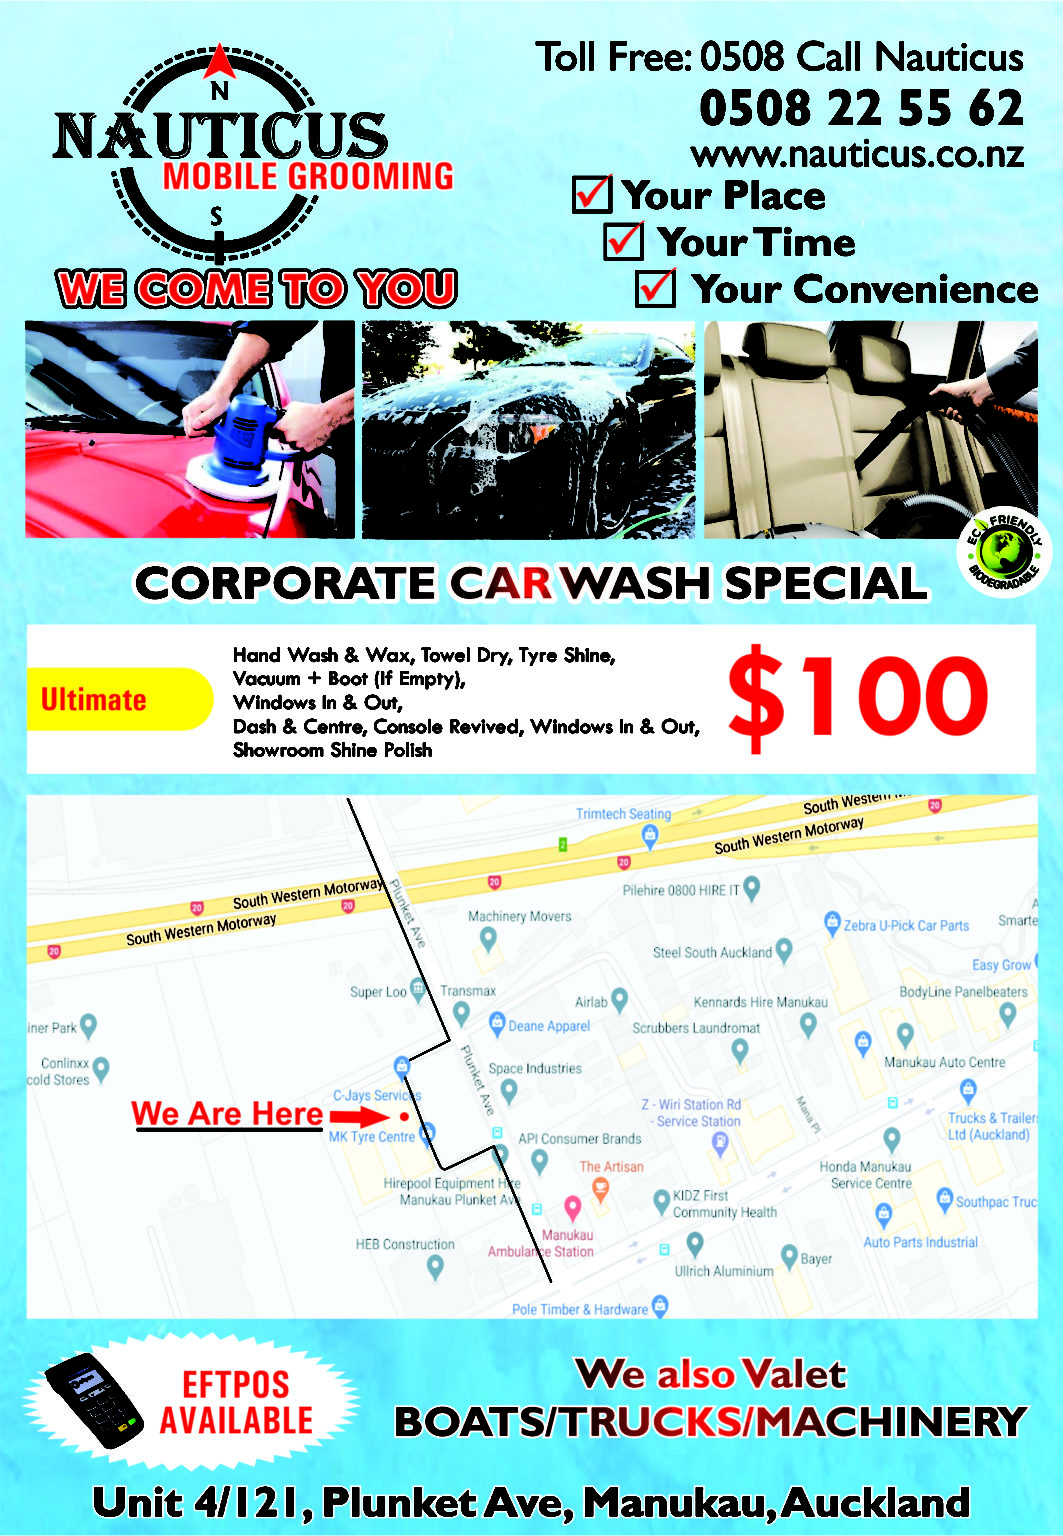 CORPORATE CAR WASH